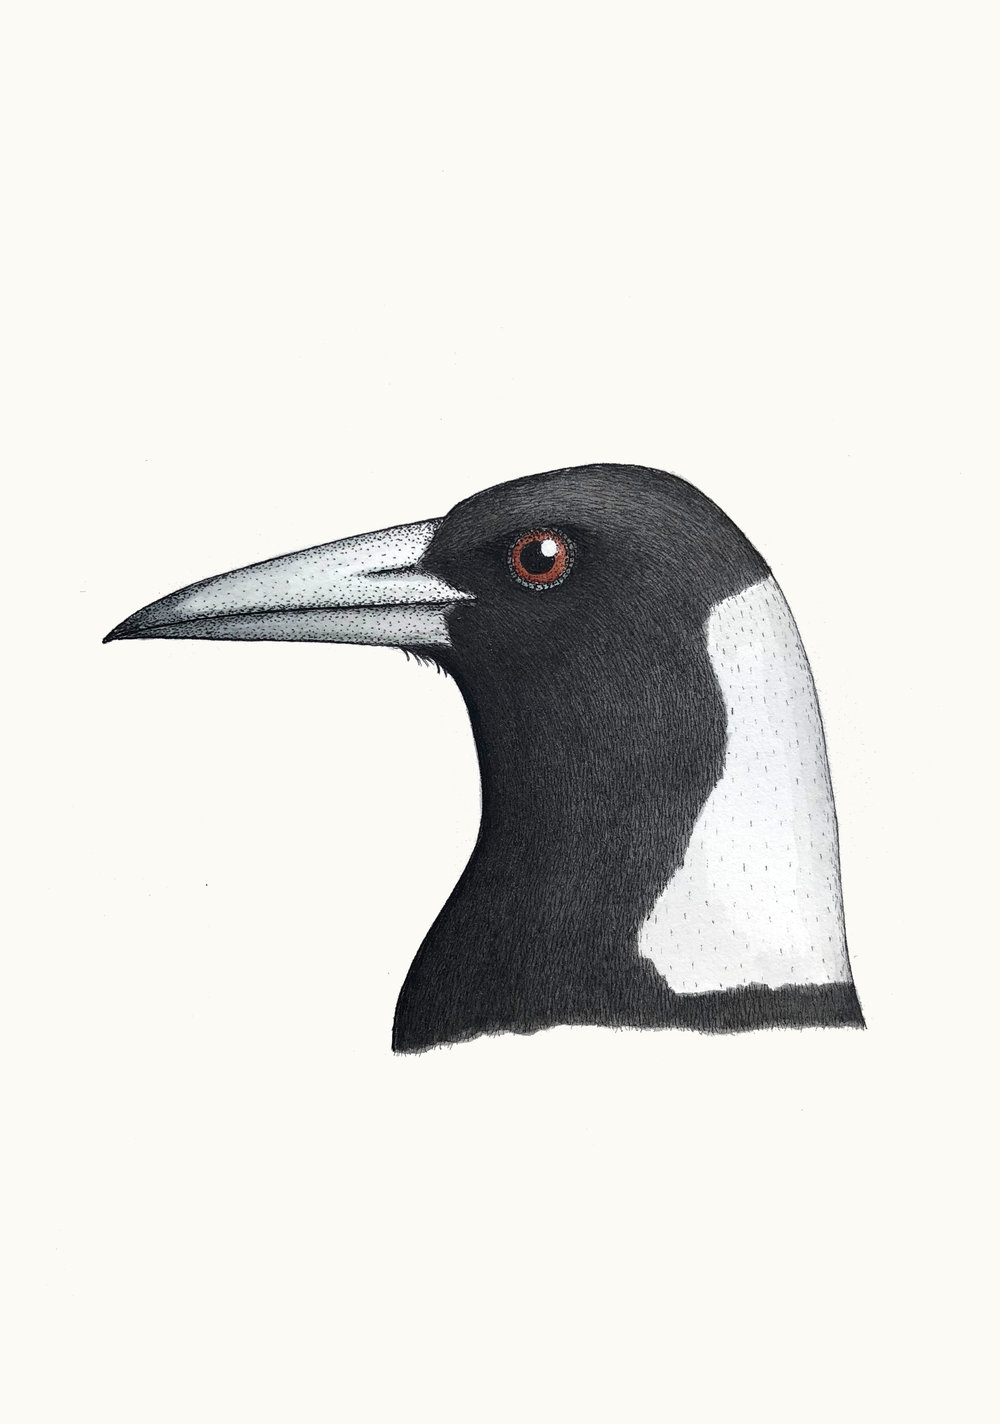 'Portrait of an Australian Magpie'